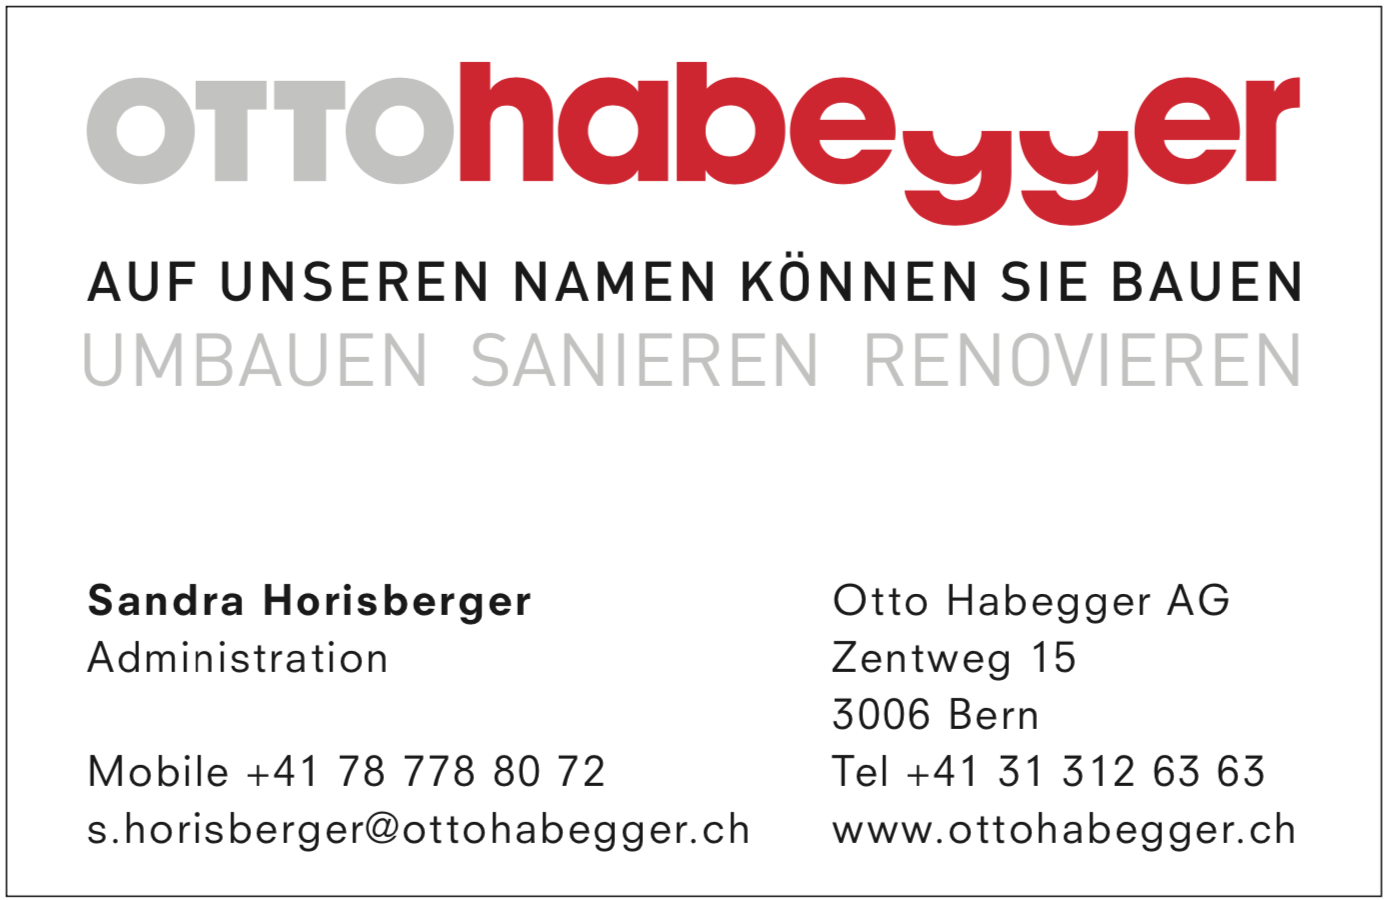 //ottohabegger.ch/wp-content/uploads/2019/07/sandra.png